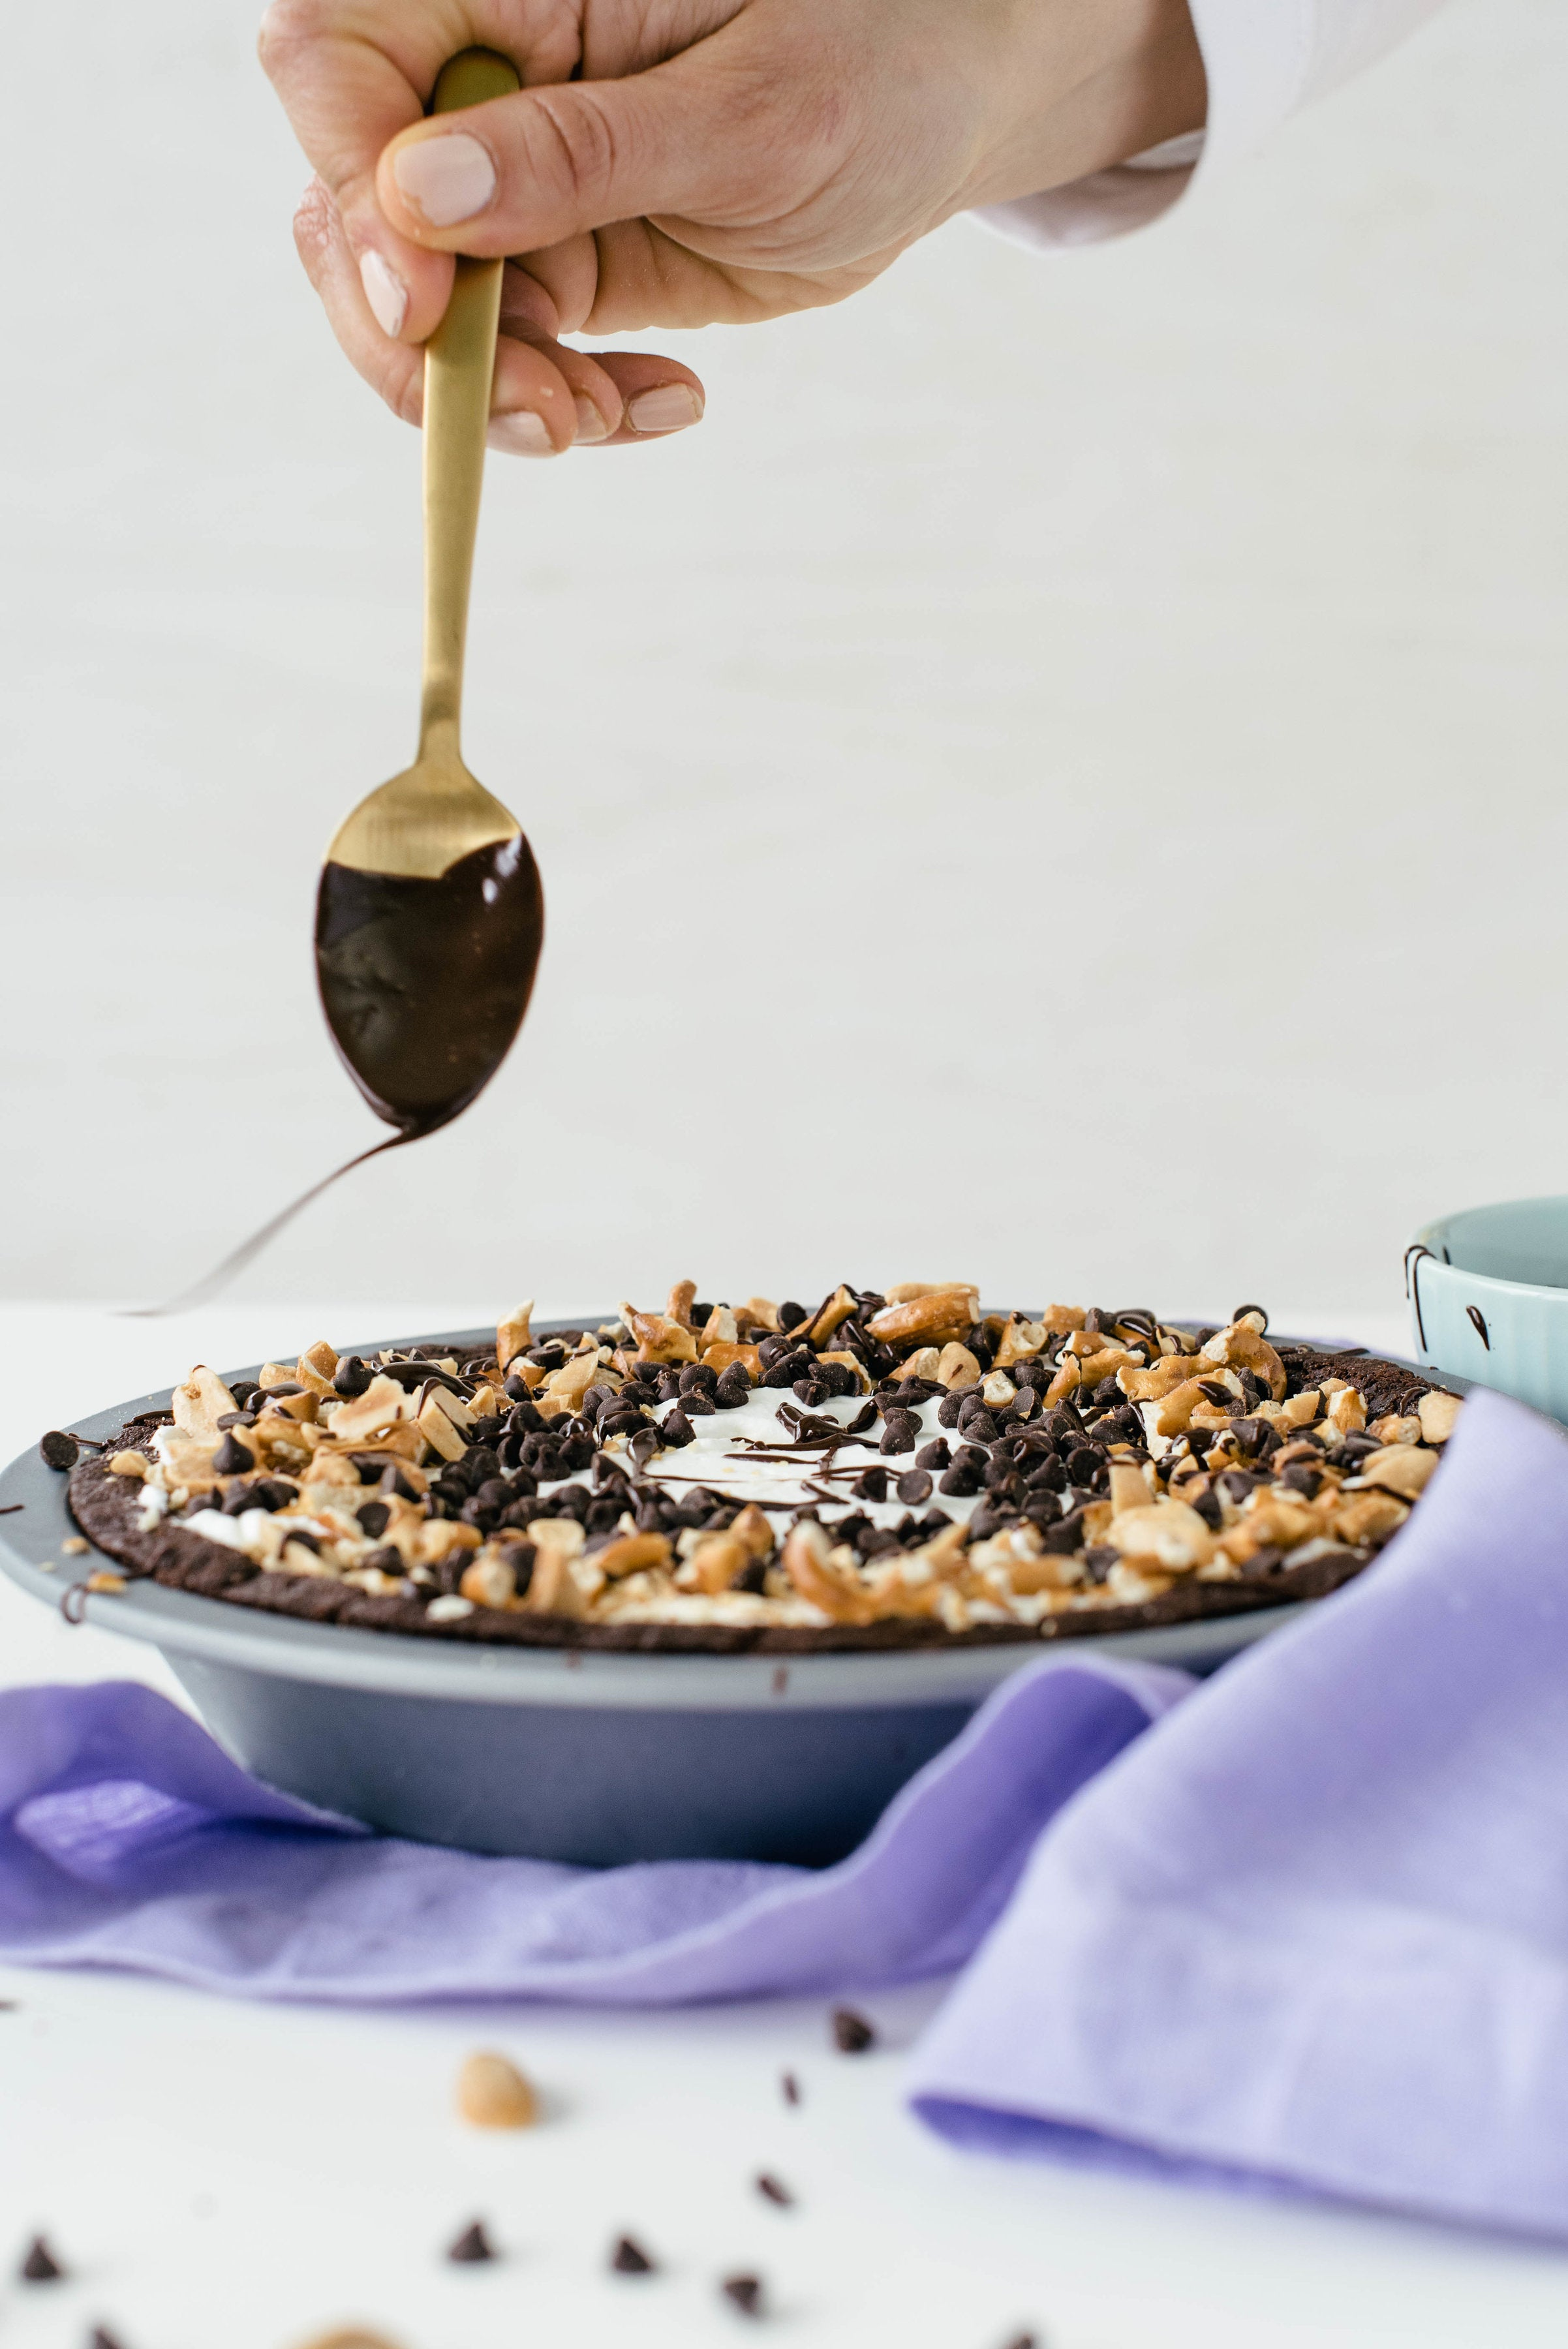 Image of a hand drizzling chocolate off a spoon onto Miss Jones Baking Co Salted Caramel Brownie Pie